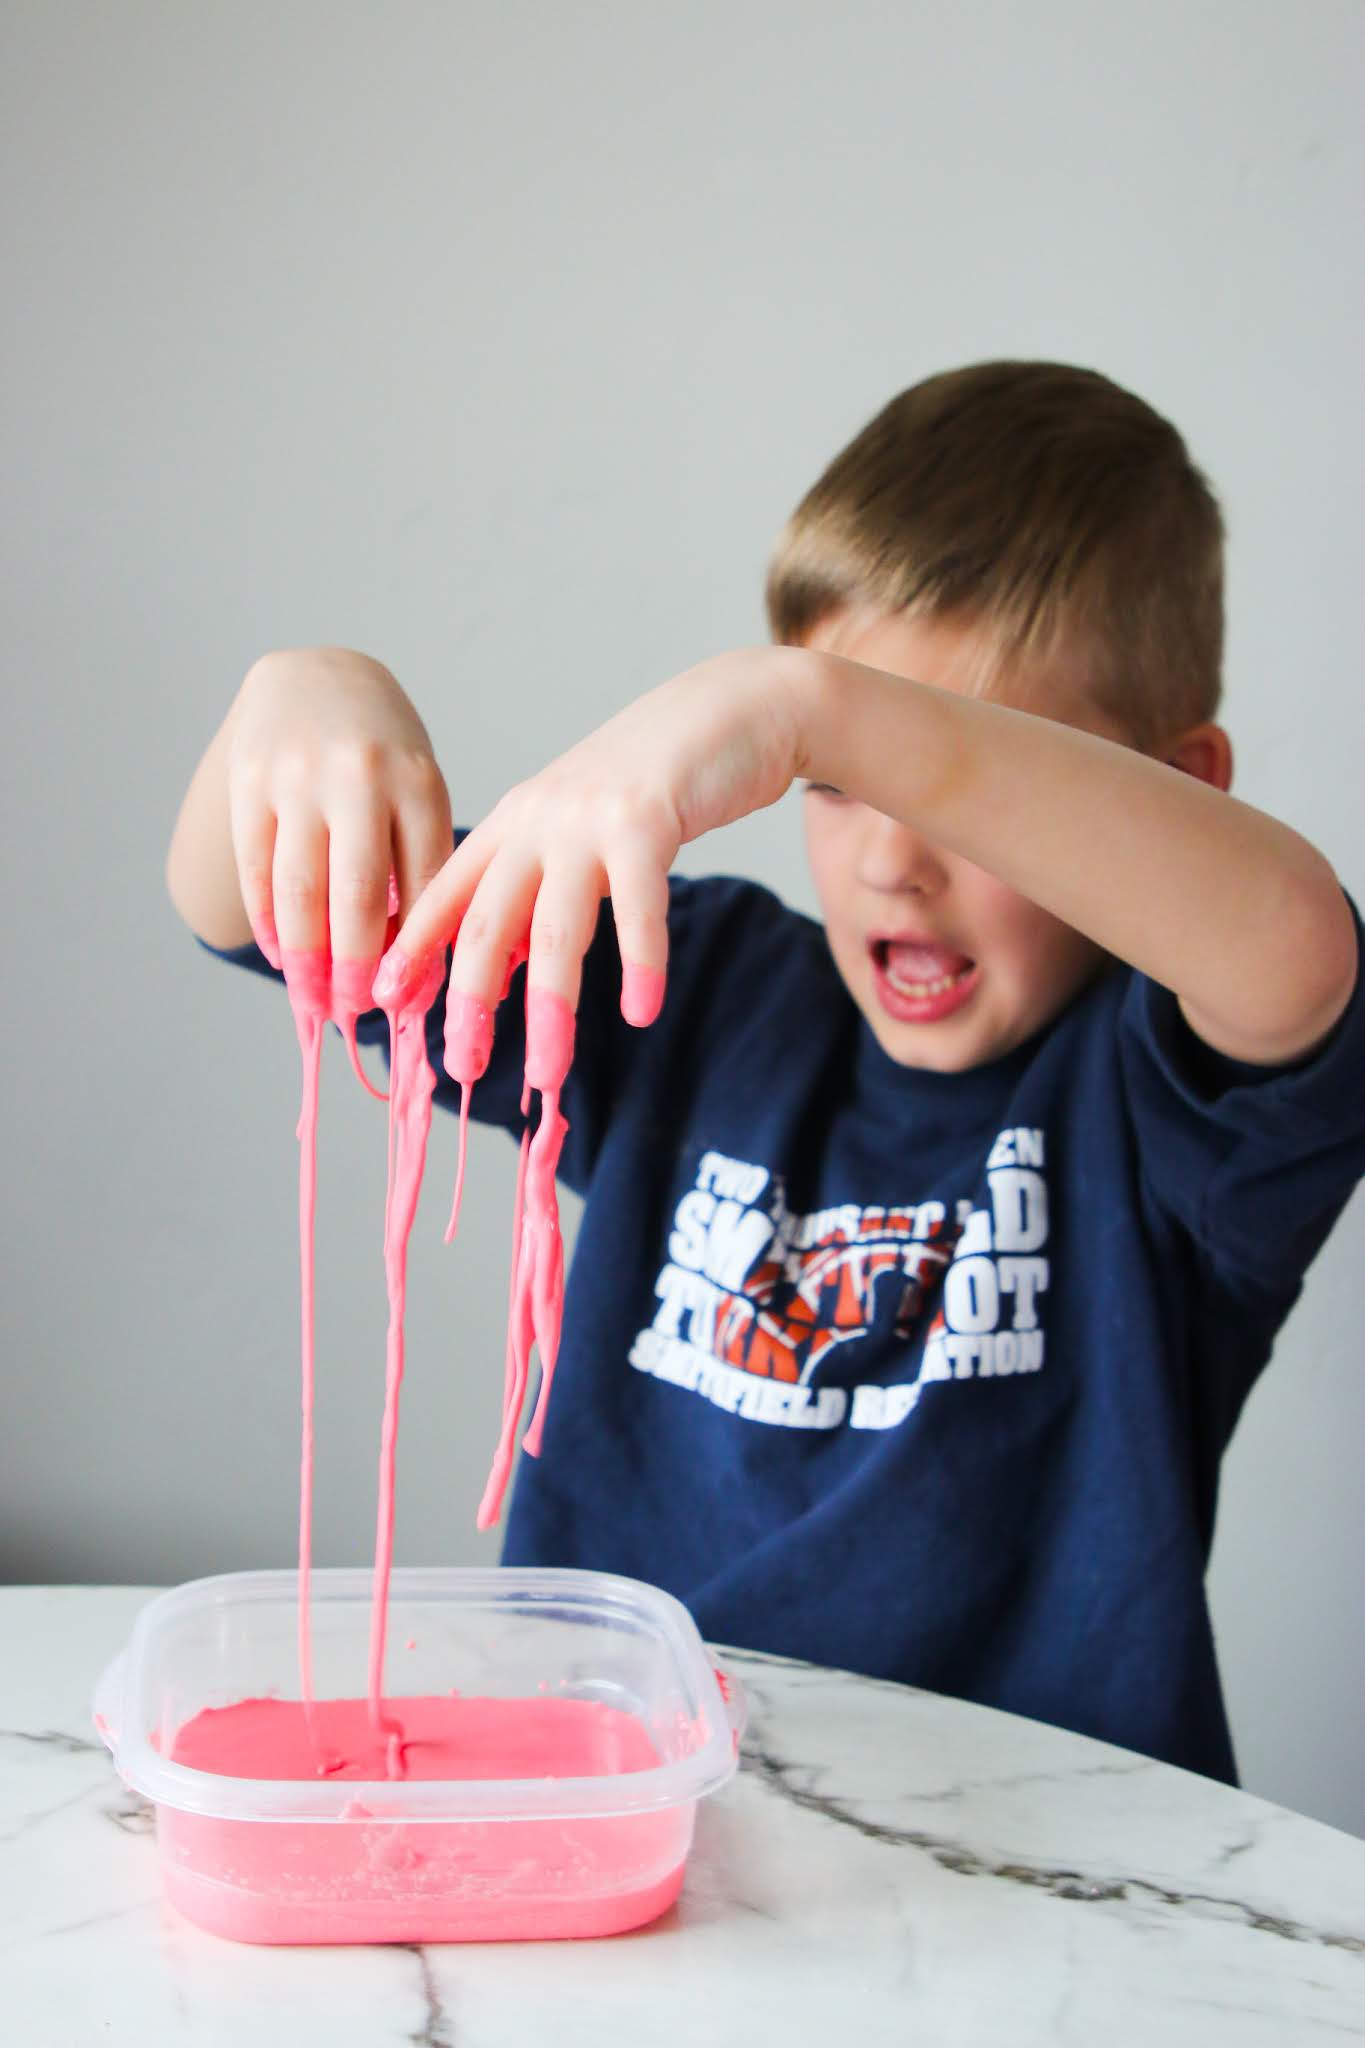 How do you make oobleck. How to make oobleck at home. Dr Seuss Bartholomew and the Oobleck. Super inexpensive fun kitchen experiment. Science experiment for kids. Homeschool science ideas. Homeschool art ideas. Sensory play at home. Home OT and PT ideas. Oobleck recipe. Oobleck Experiment. DIY oobleck. Oobleck craft. Oobleck slime. Quarantine activity ideas. #oobleck #drseuss #slime #craftsforkids #pt #ot #sensory #homeschool #science #quarantine #pandemic